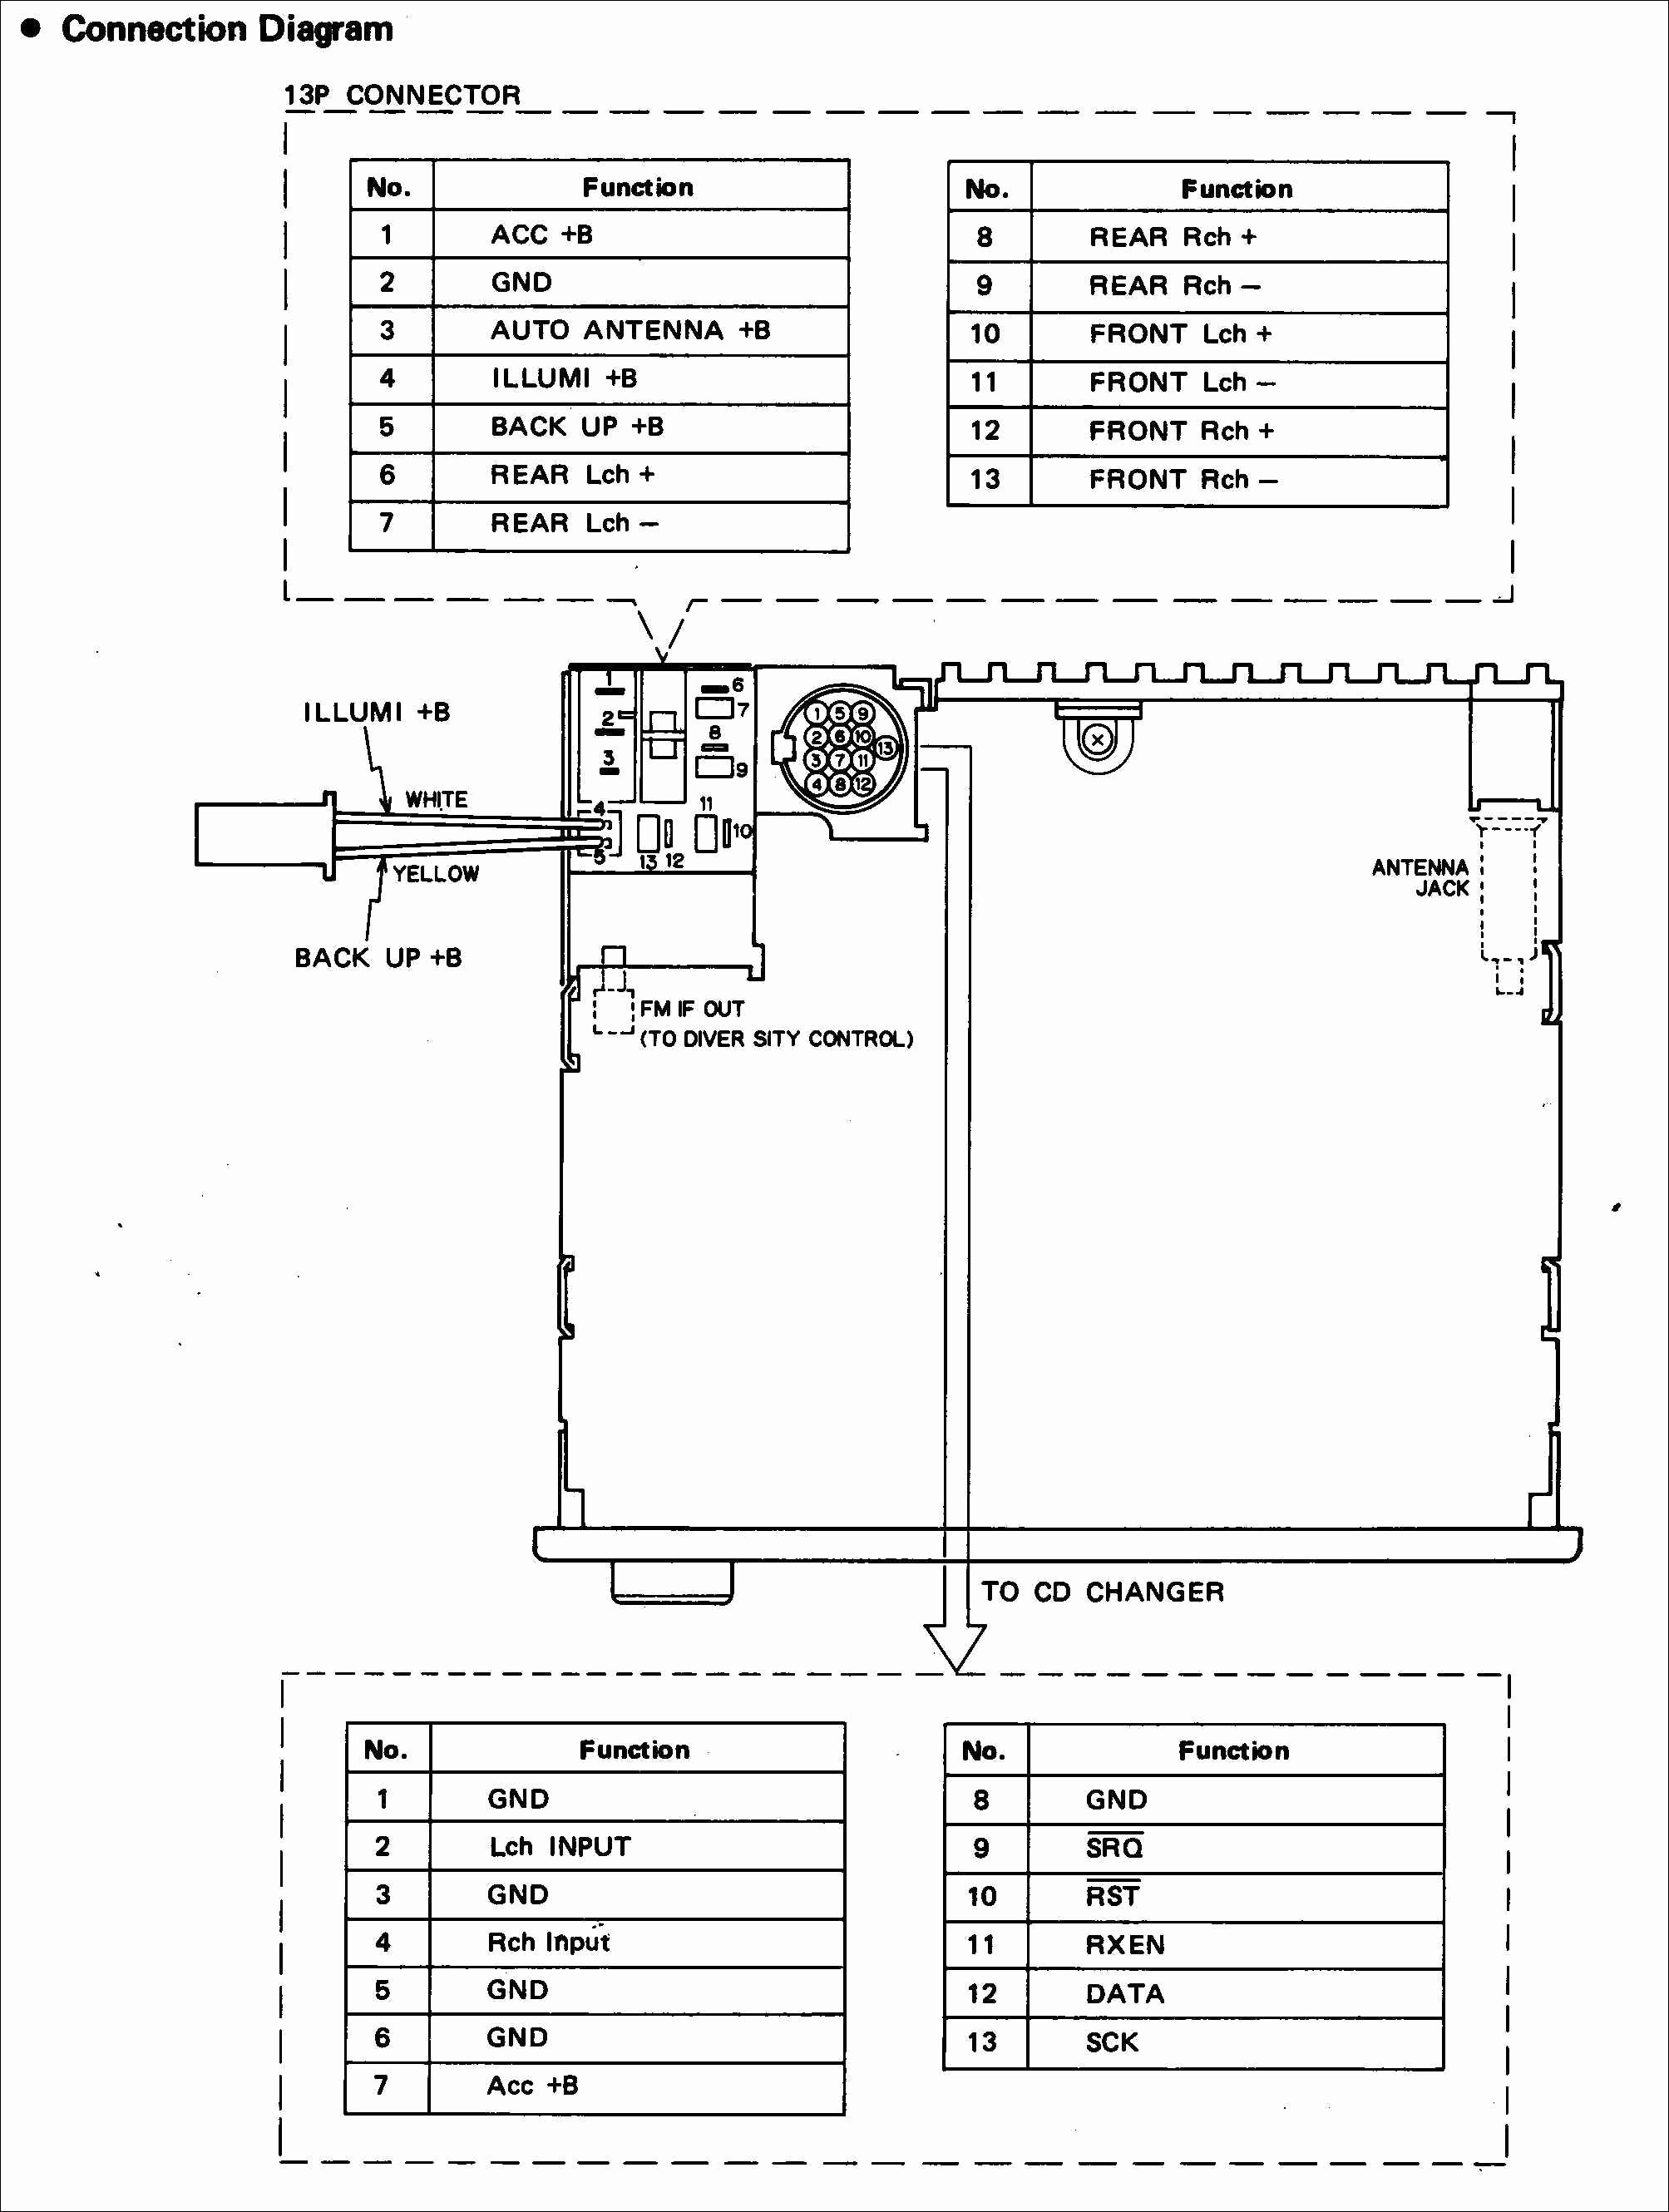 Kenwood Kdc 222 Wiring Diagram from 2020cadillac.com